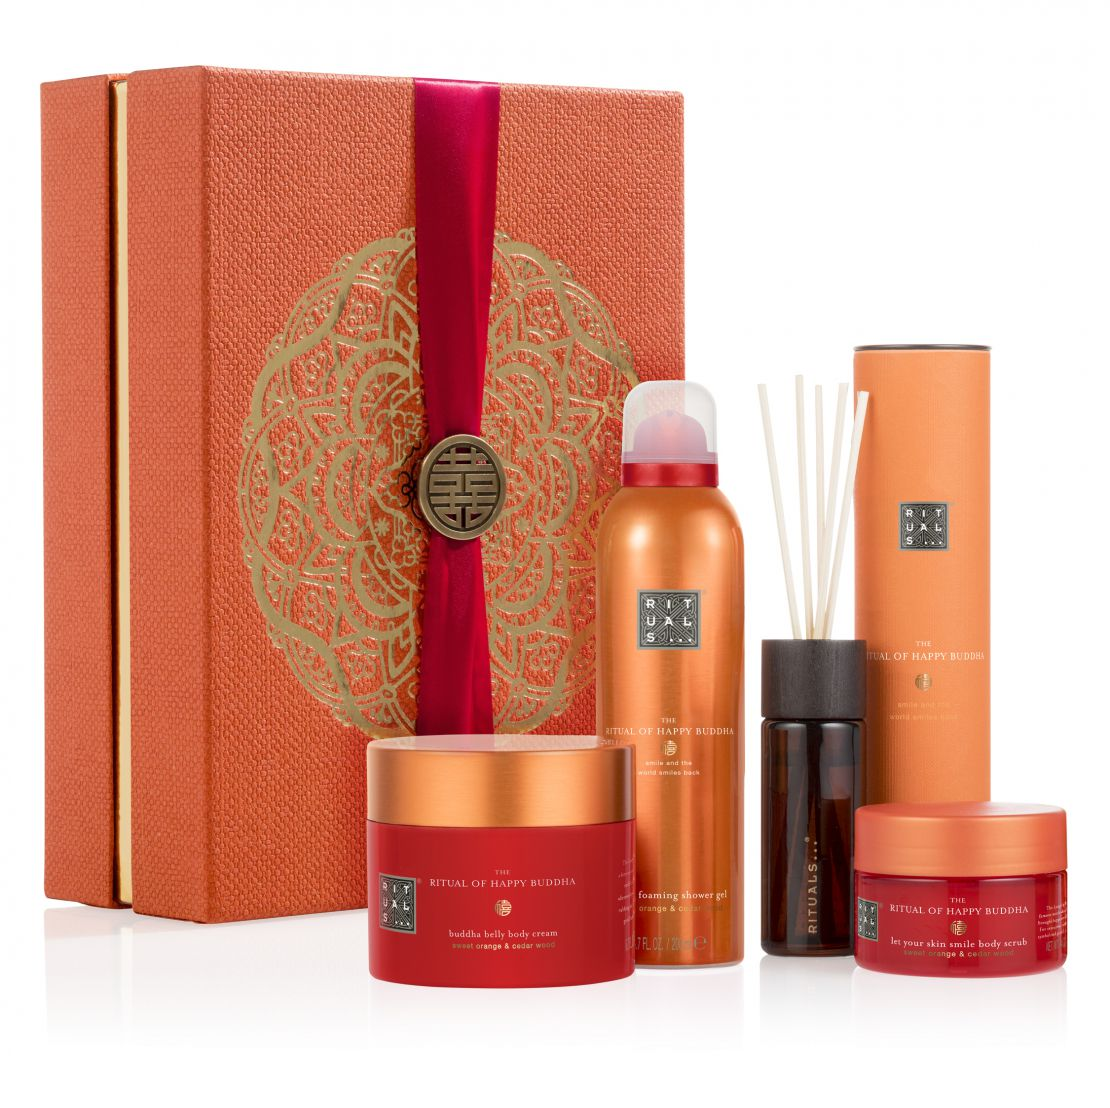 Rituals Happy Buddha Collection